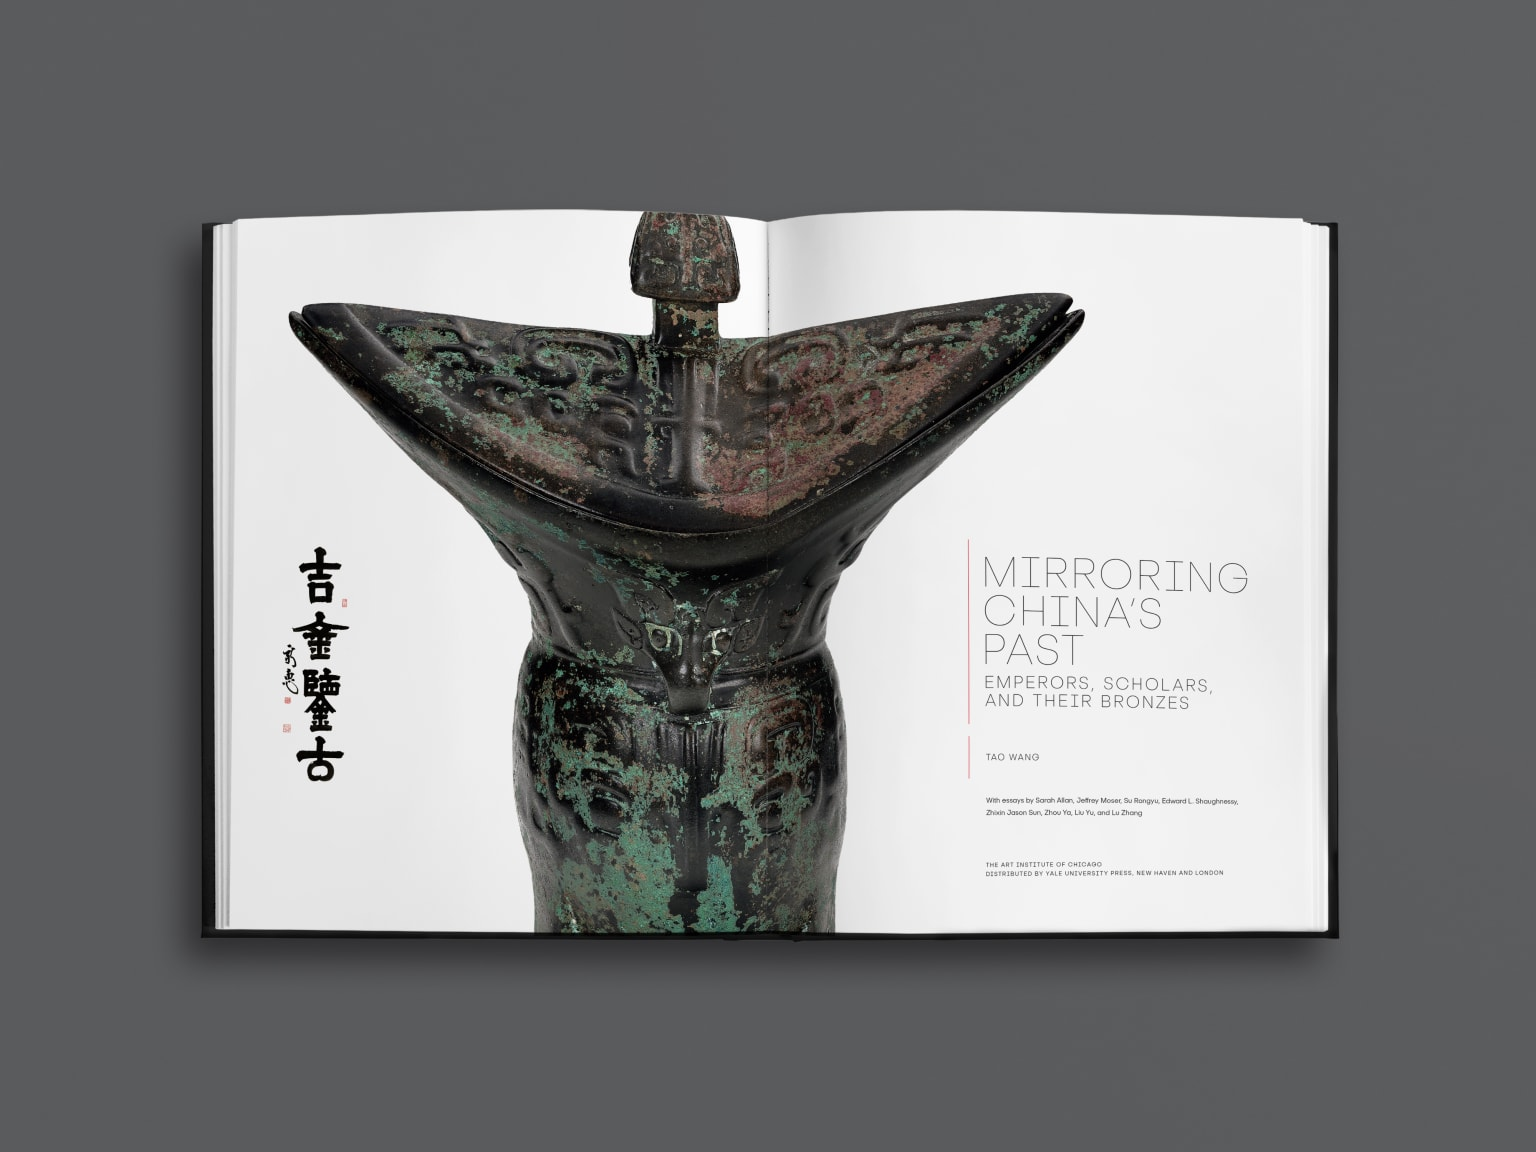 The Art Institute of Chicago Mirroring China's Past